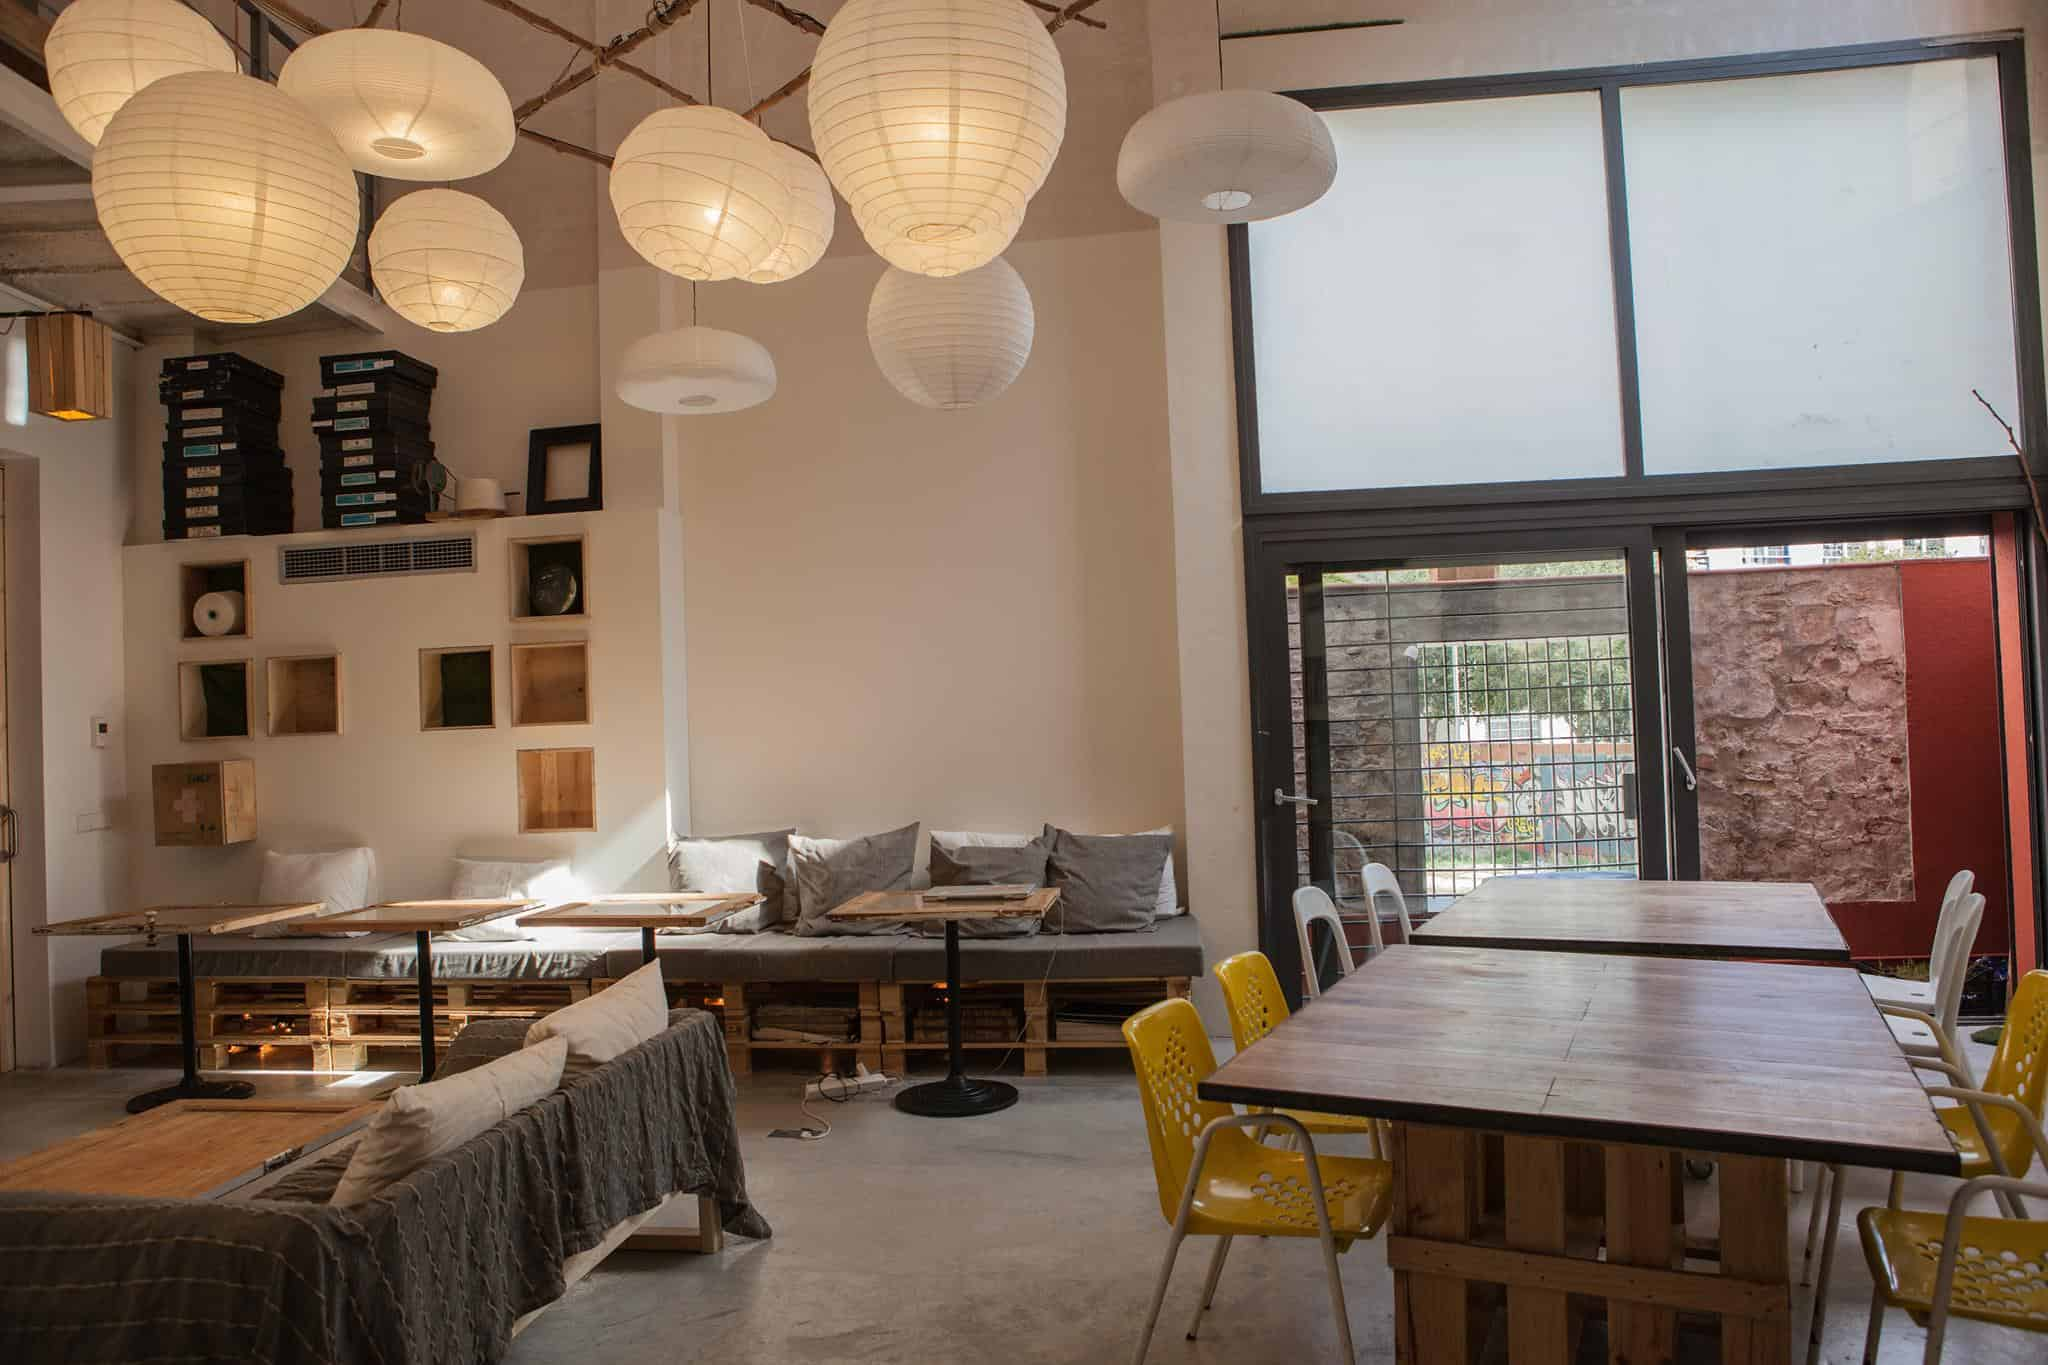 Apocapoc Is The Definition Of An Eco Environment Friendly Co Working Space.  Its A 200 Square Meter Coworking Space With Multifunctional Elements That  Help ...